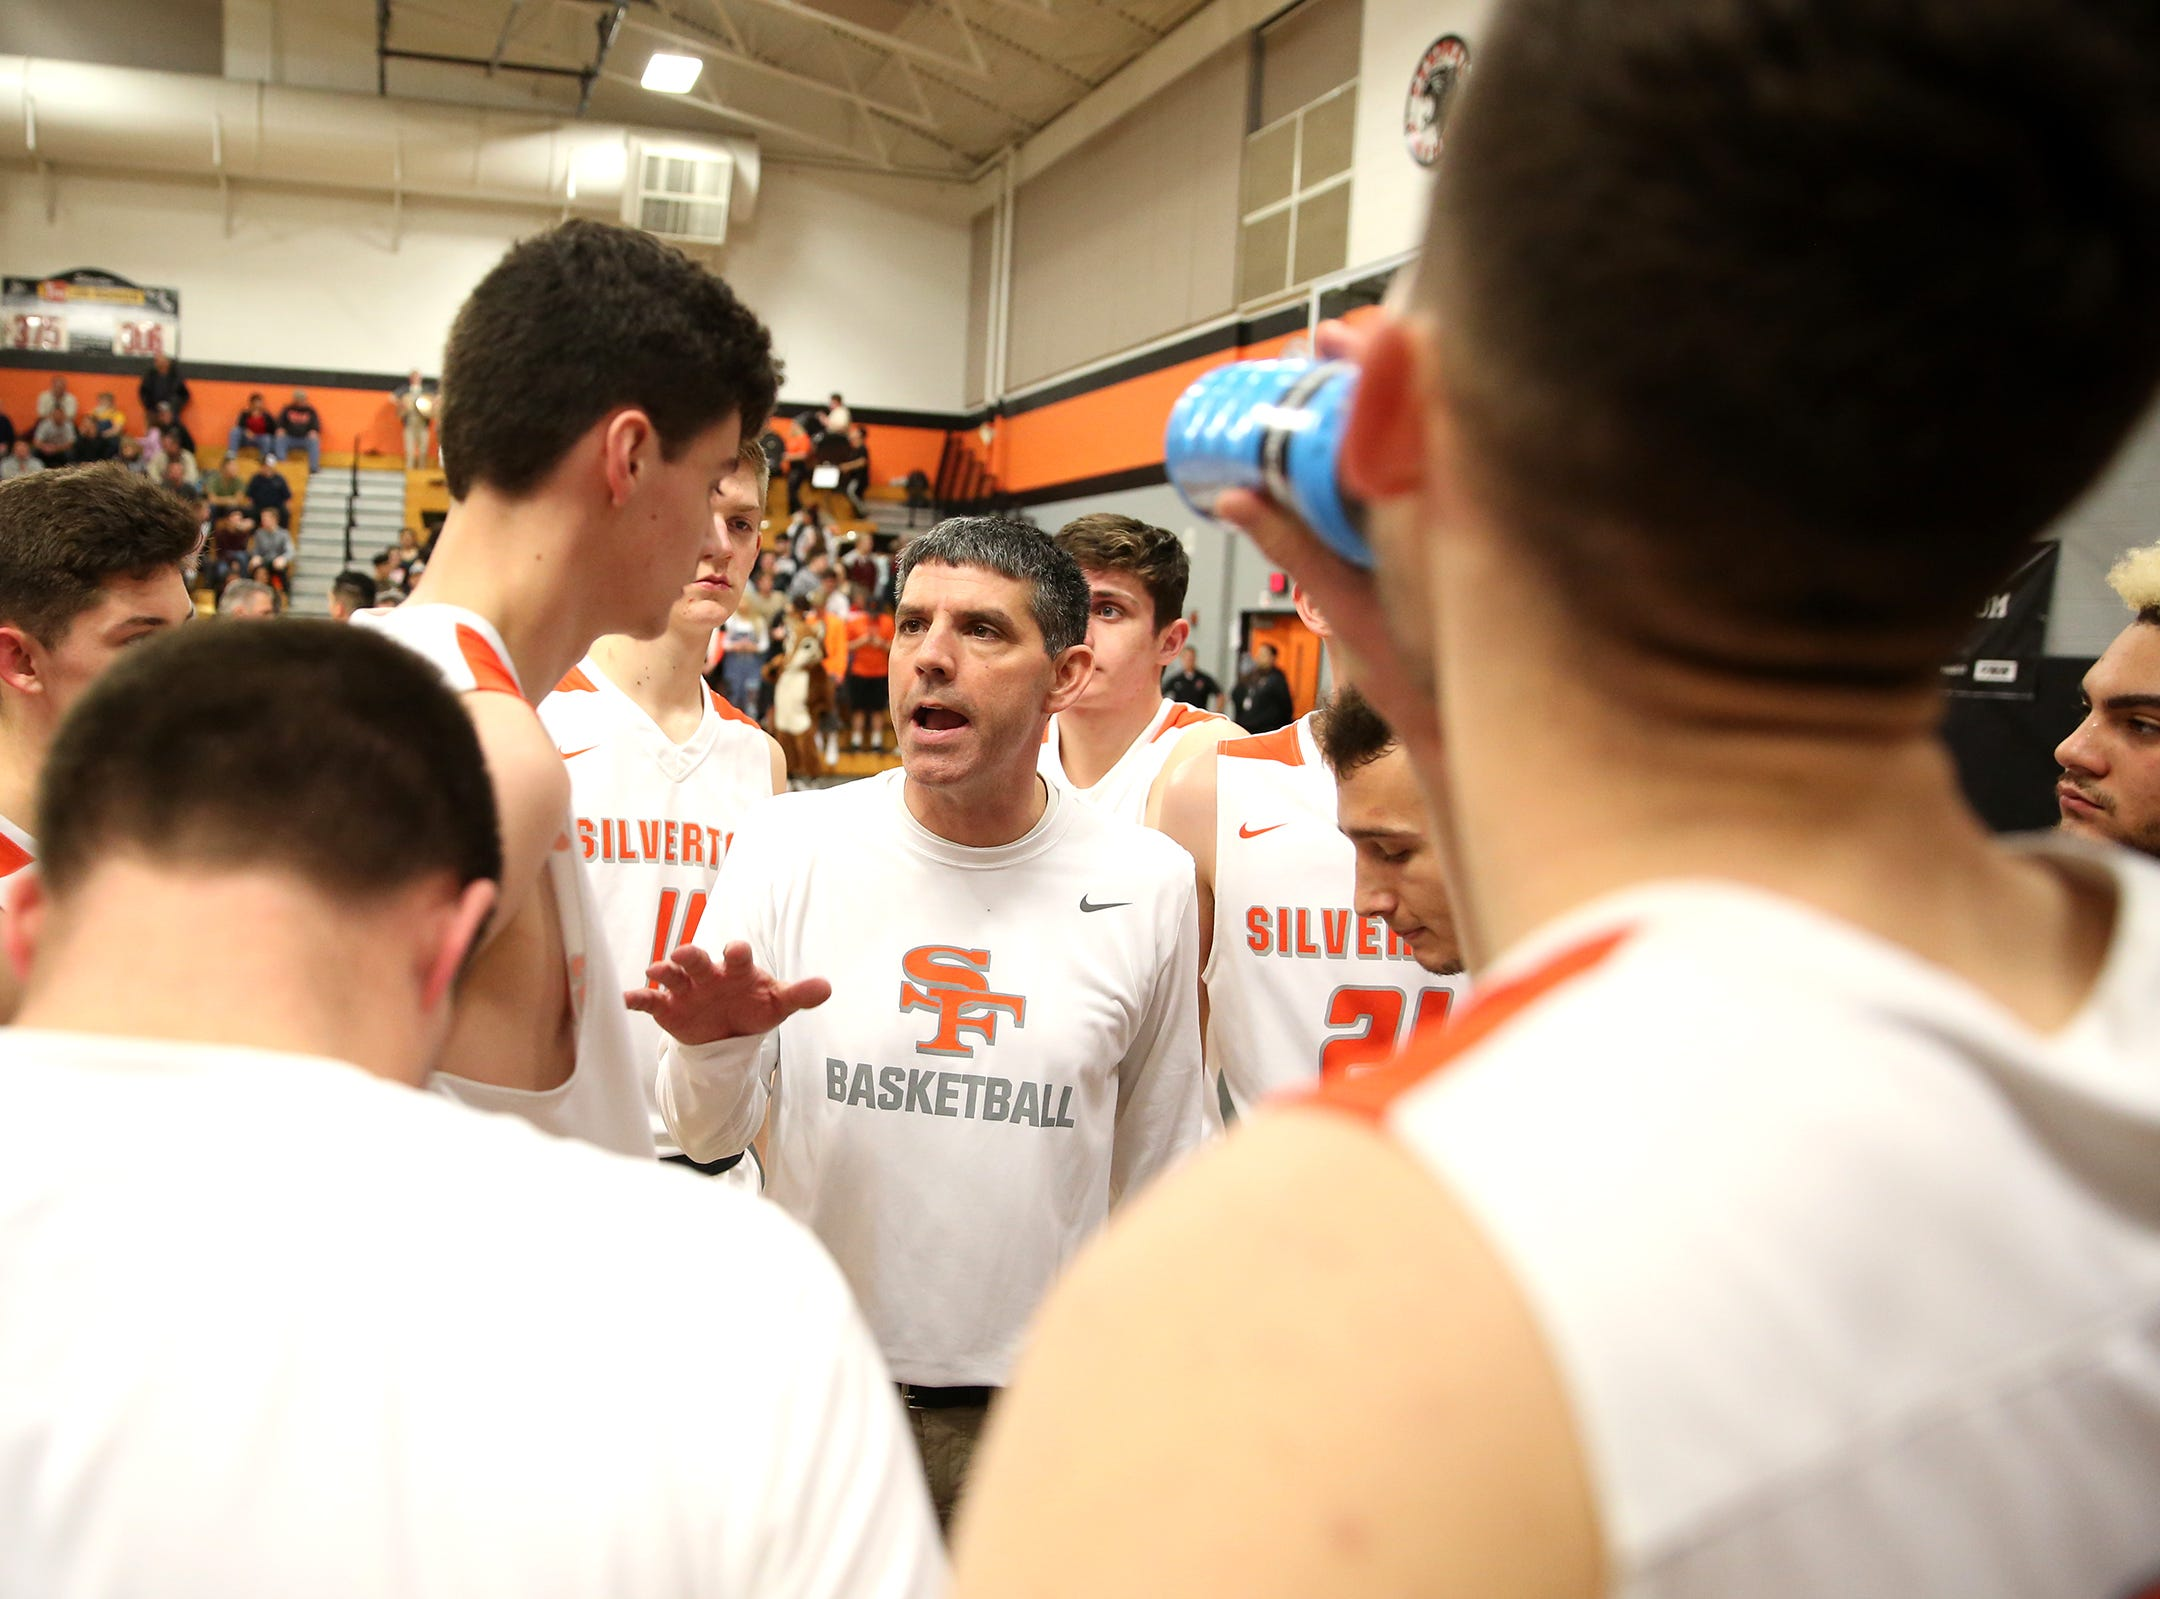 Silverton's head coach Jamie McCarty talks to his team during the West Albany vs. Silverton High School boys basketball game in Silverton on Friday, Jan. 25, 2019.